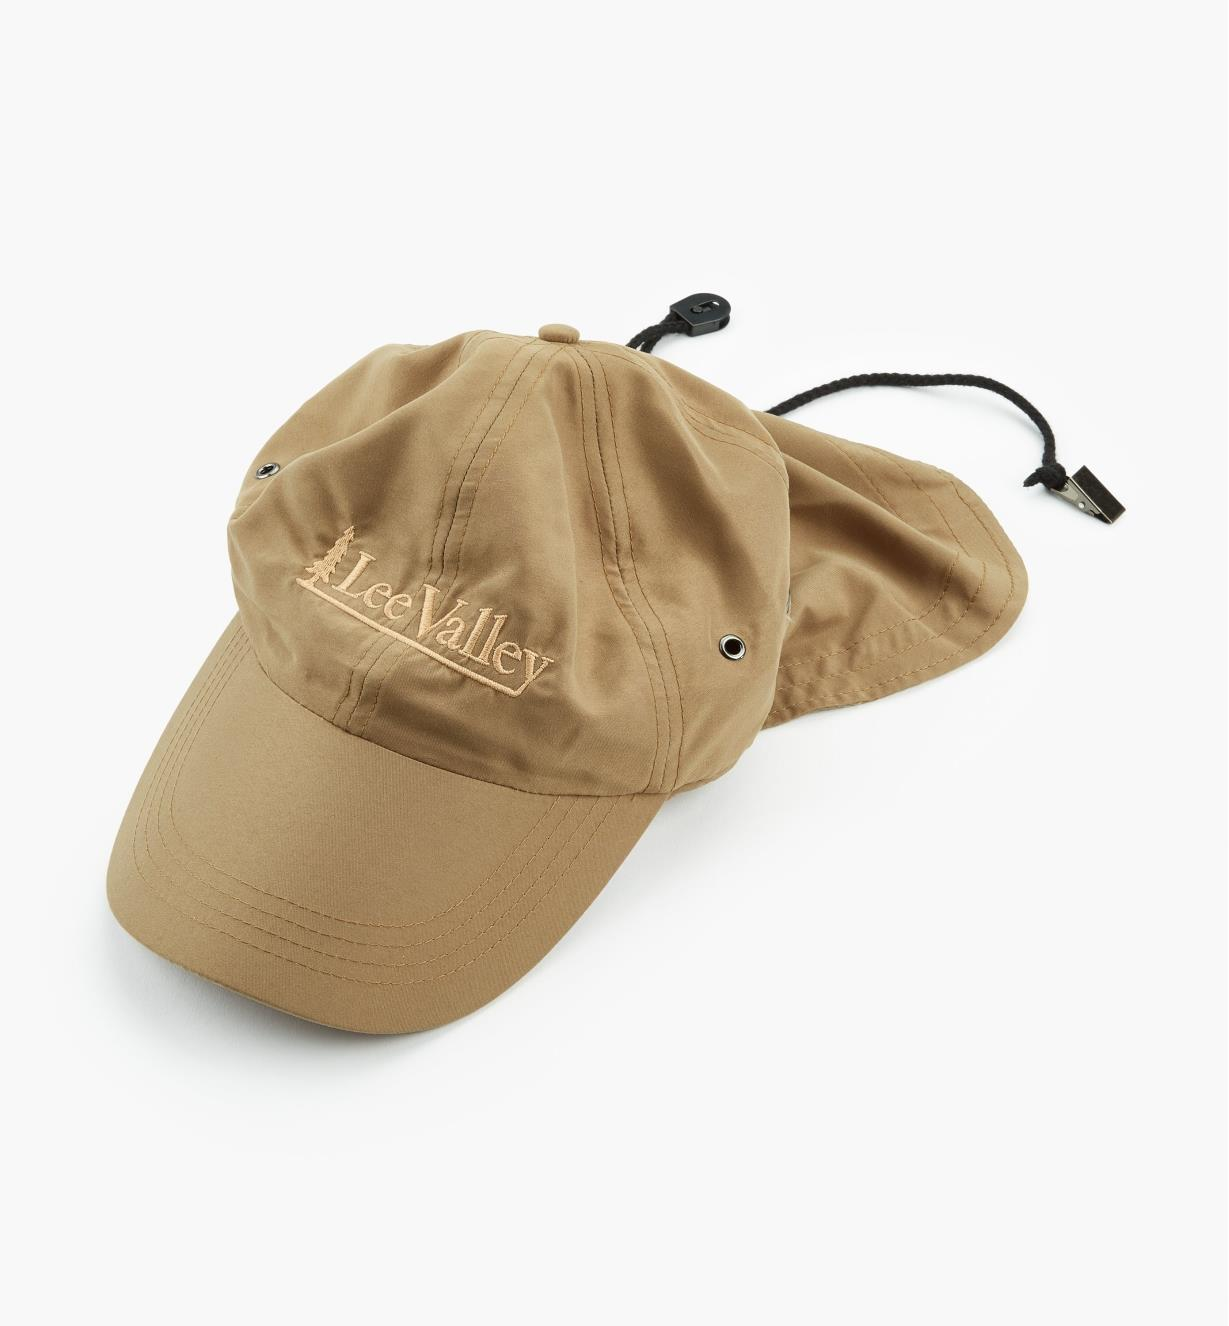 67K9940 - Lee Valley Sun Cap, Khaki